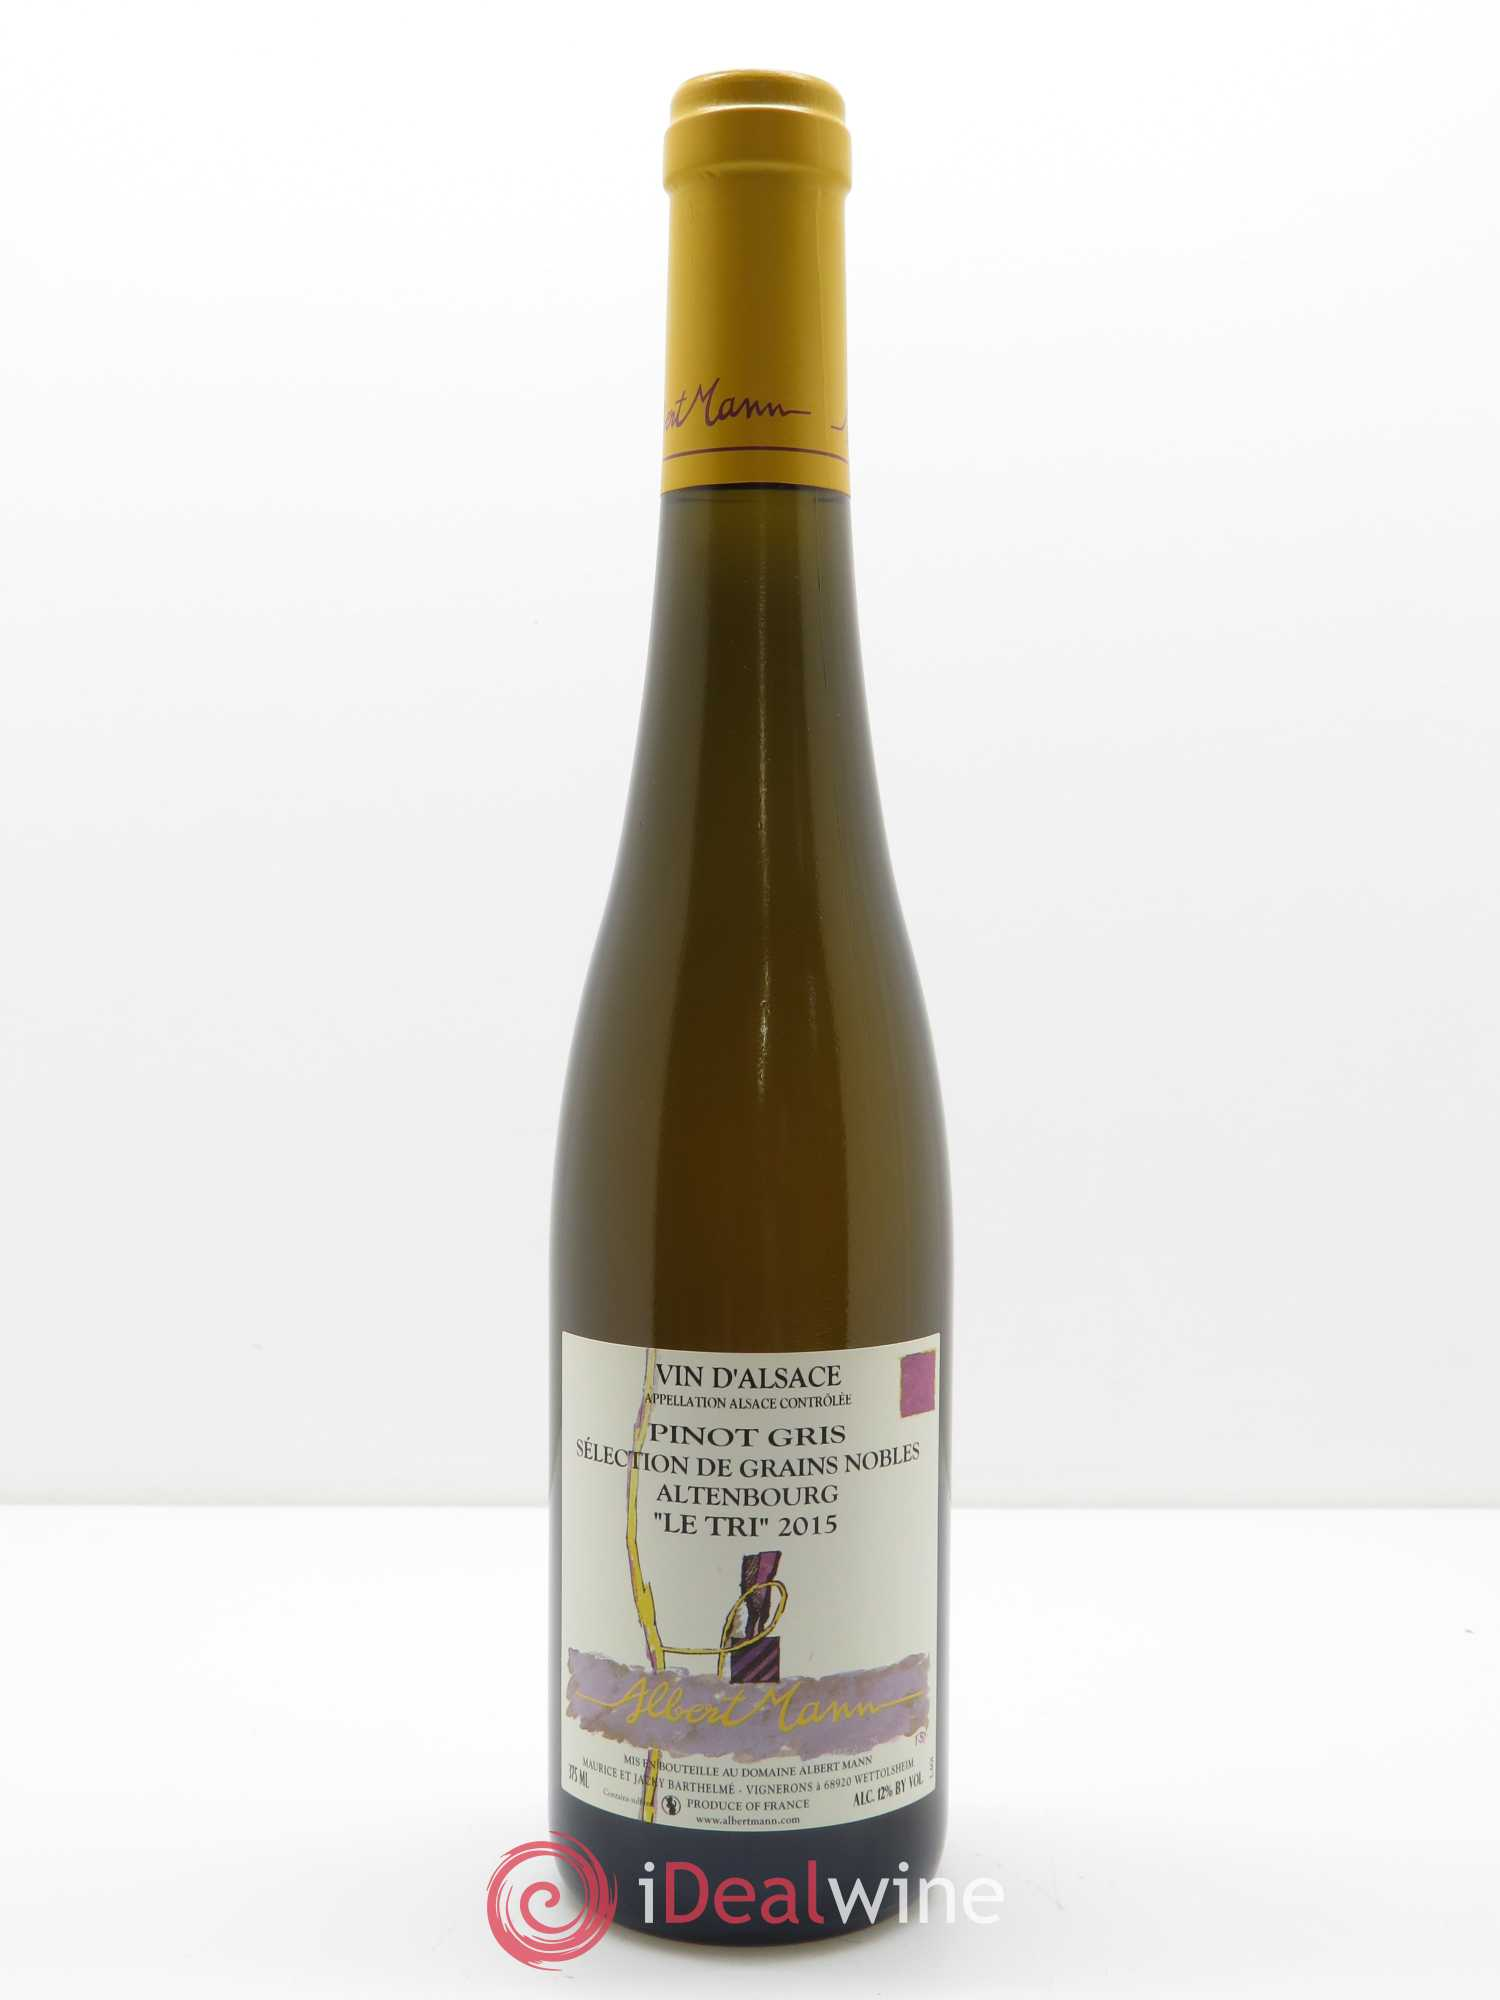 Pinot Gris Altenbourg Sélection de grains nobles Le Tri Albert Mann